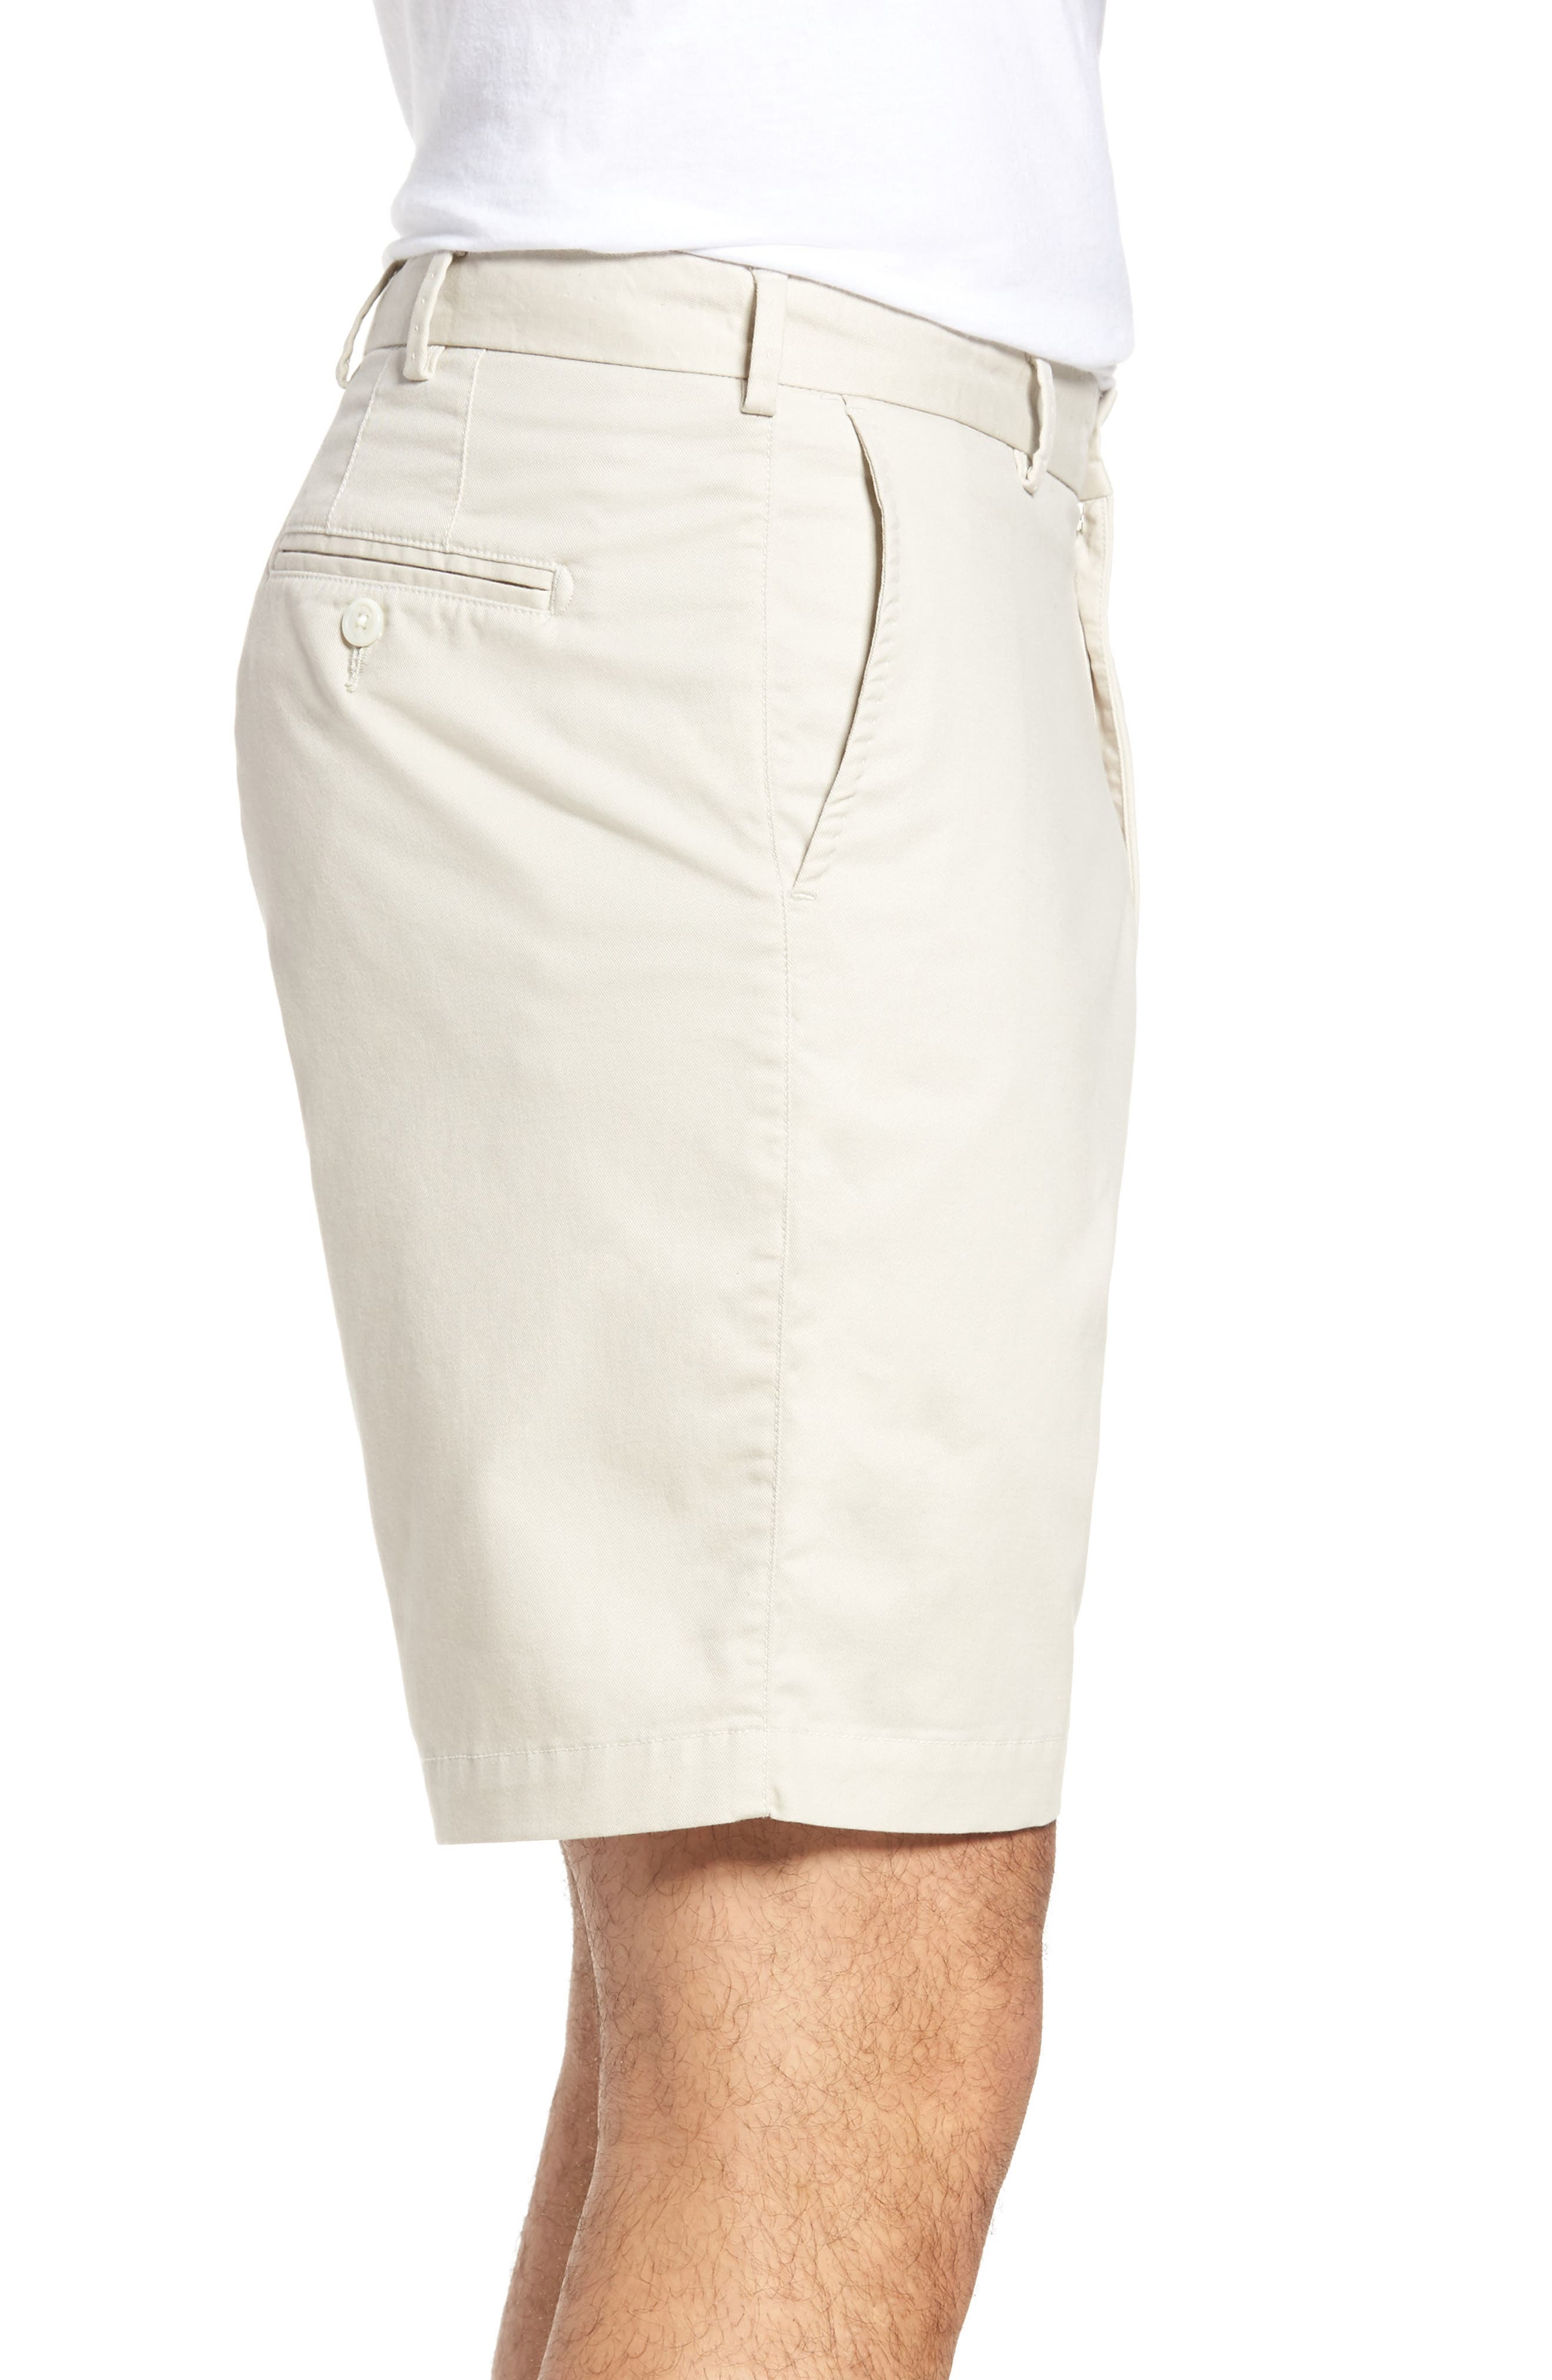 Alternate Image 3  - Peter Millar Soft Touch Twill Shorts (Tall)